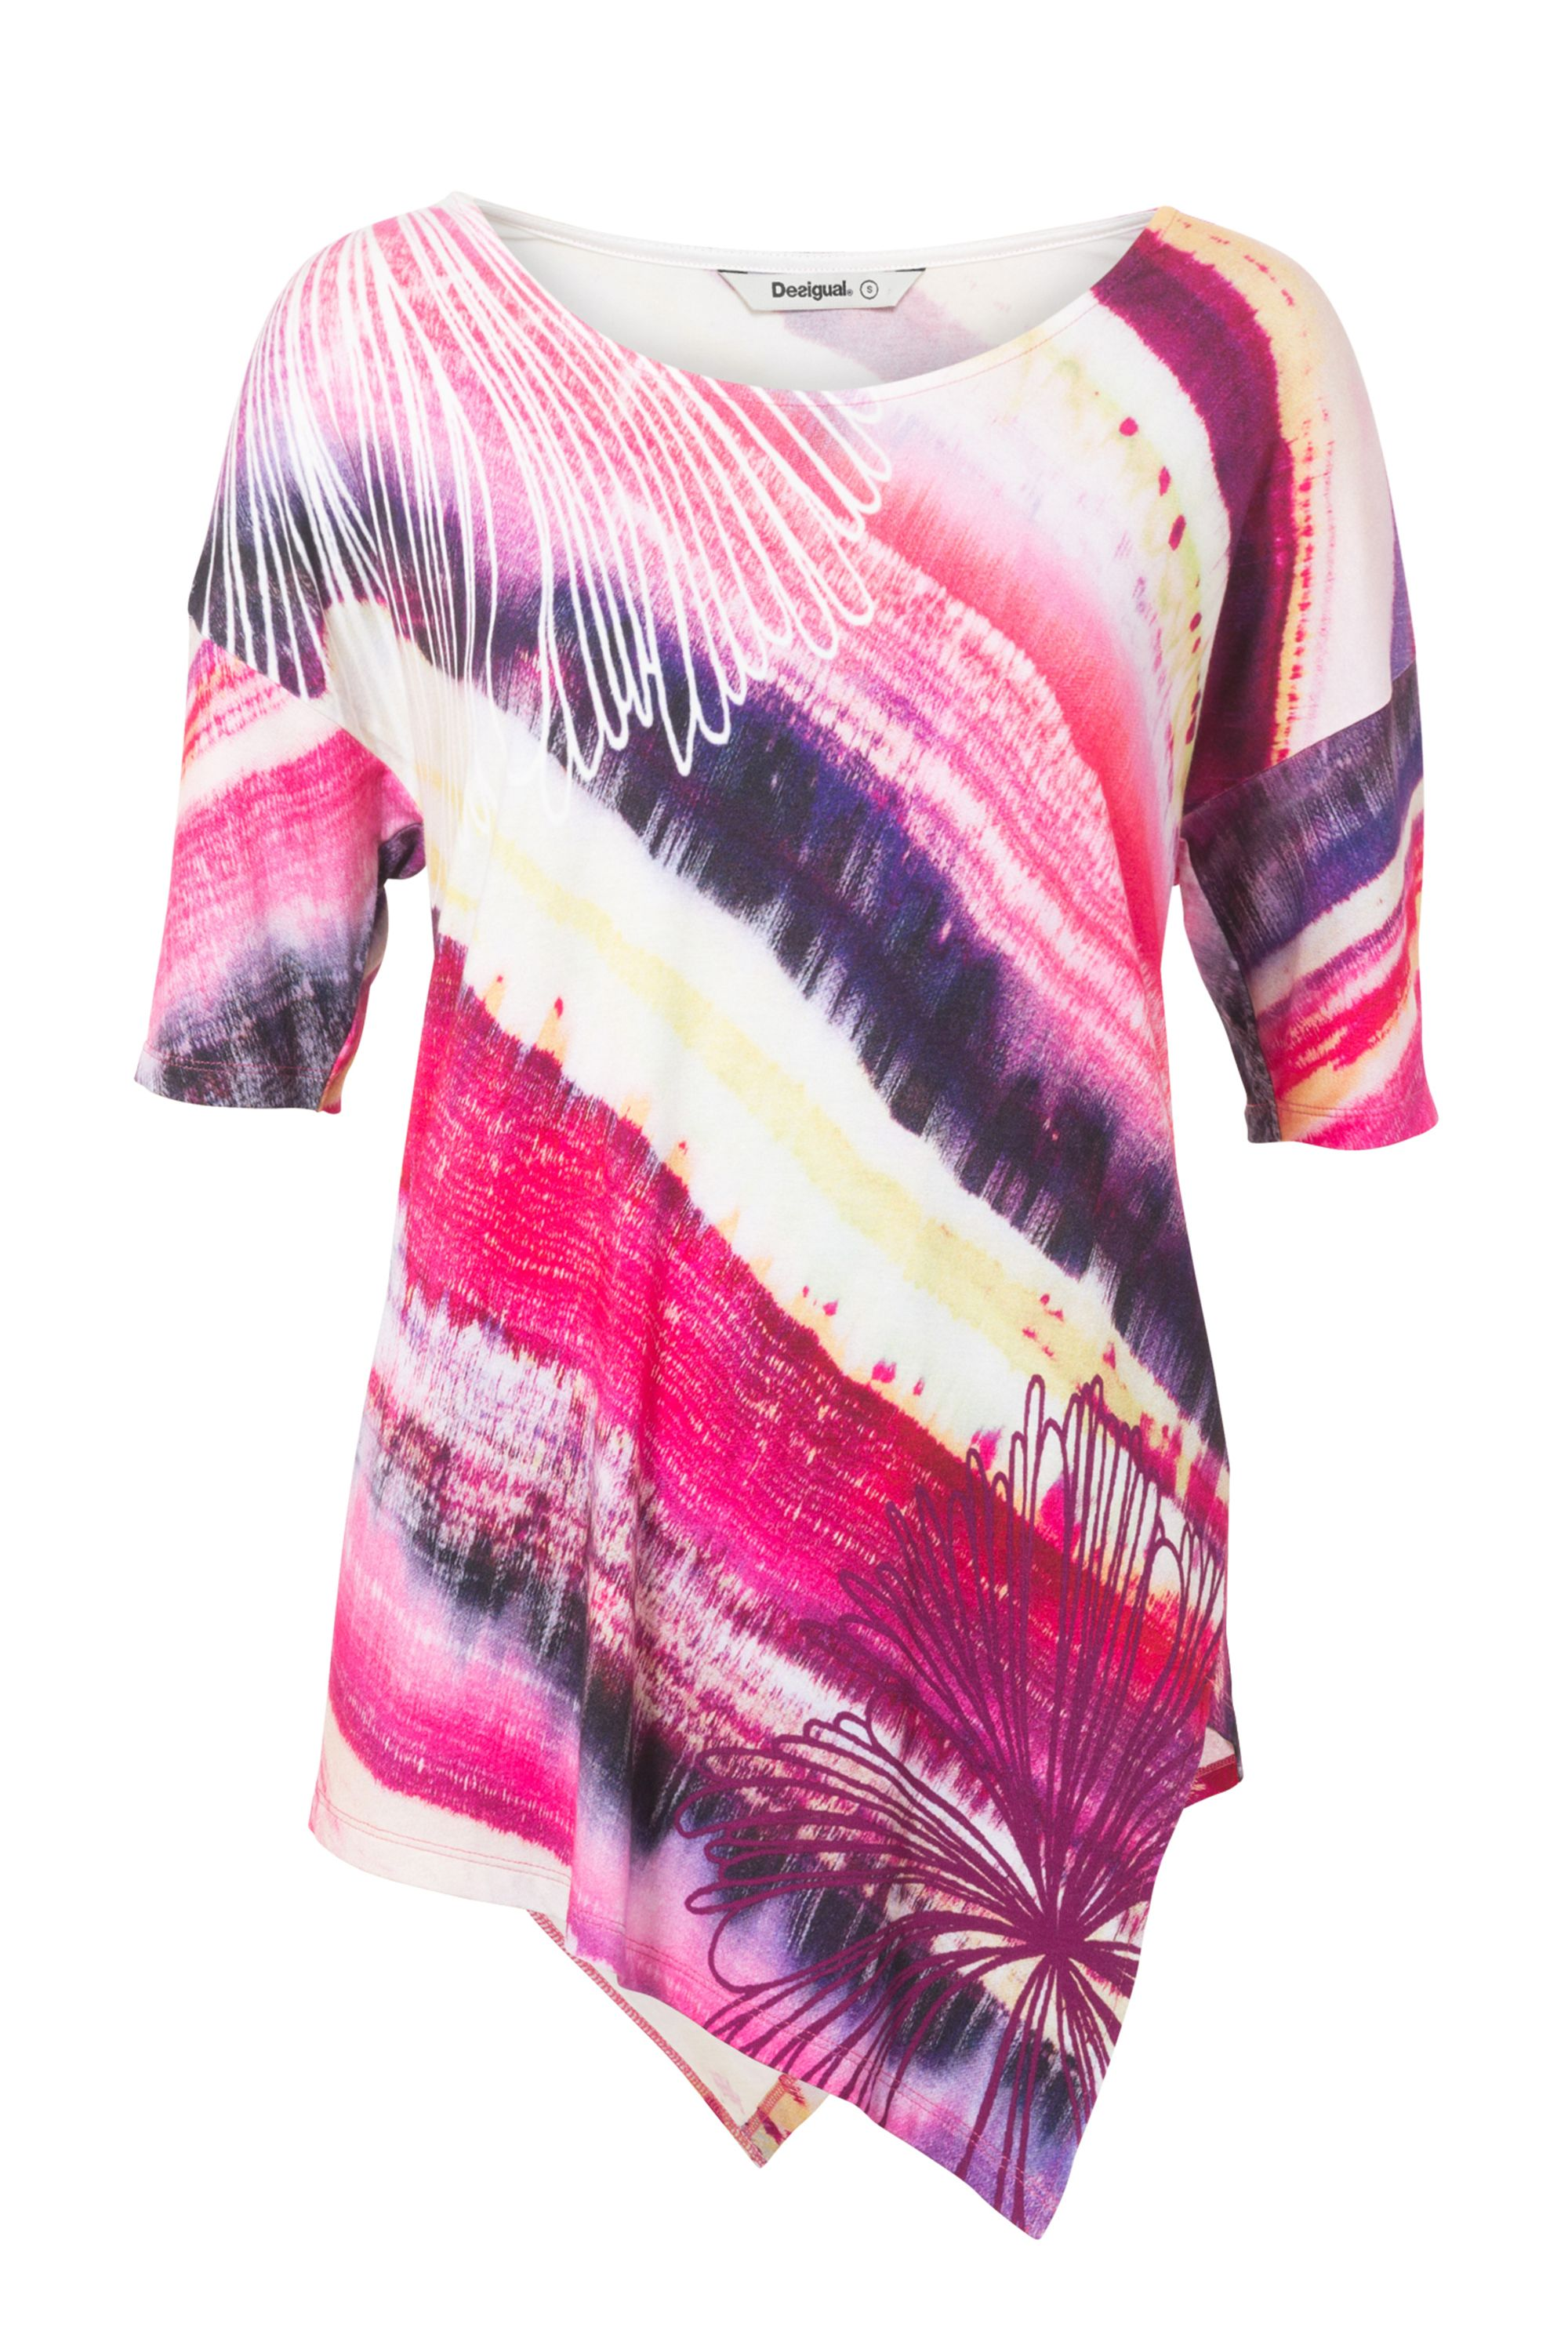 Desigual Rosita T-shirt, Purple